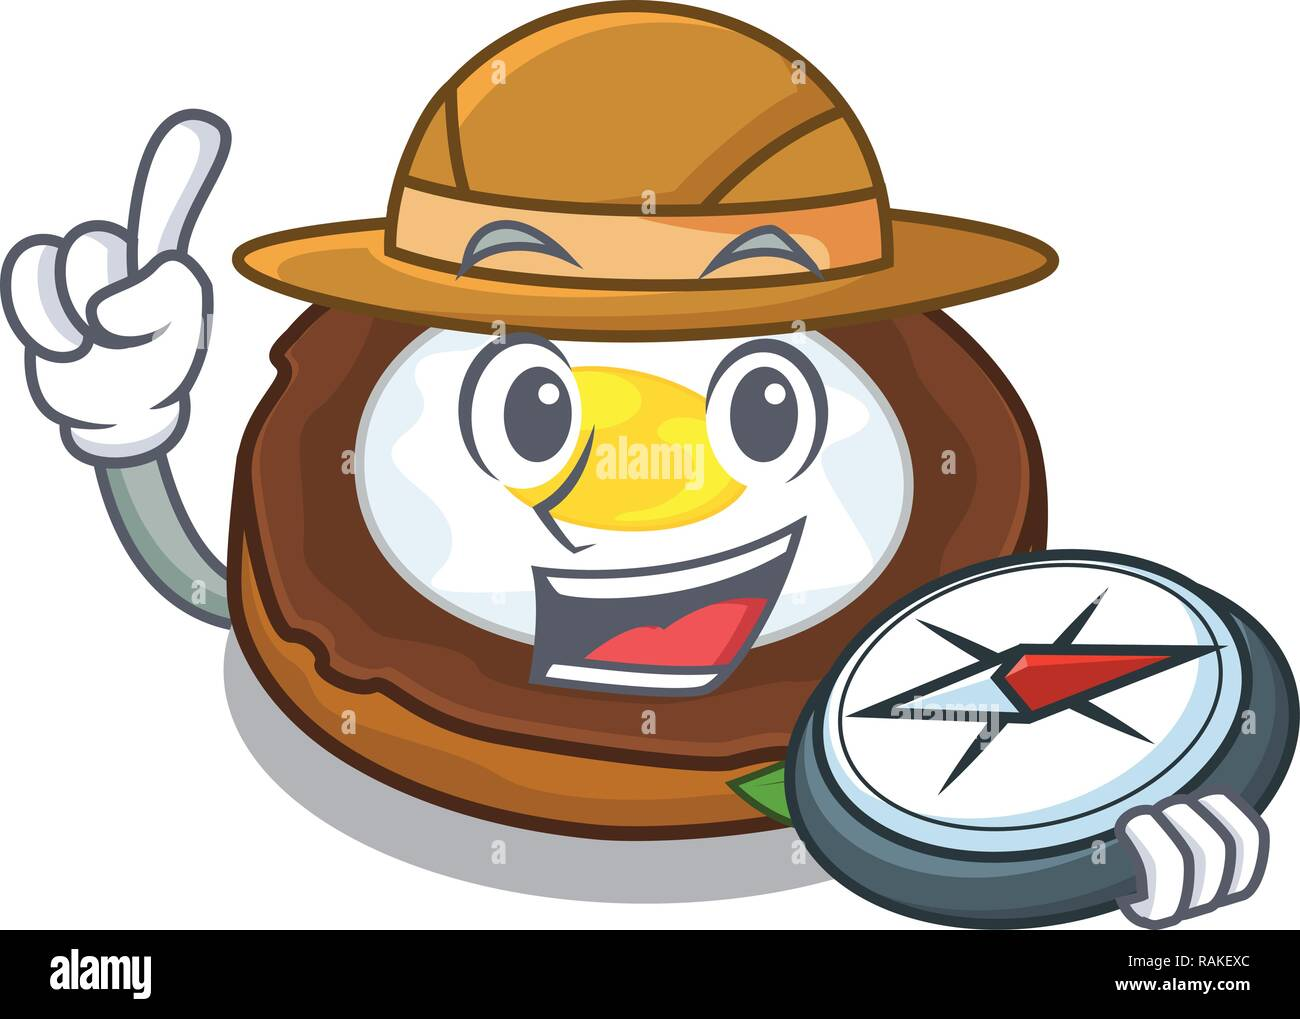 Explorer egg scotch on character wood boards - Stock Vector